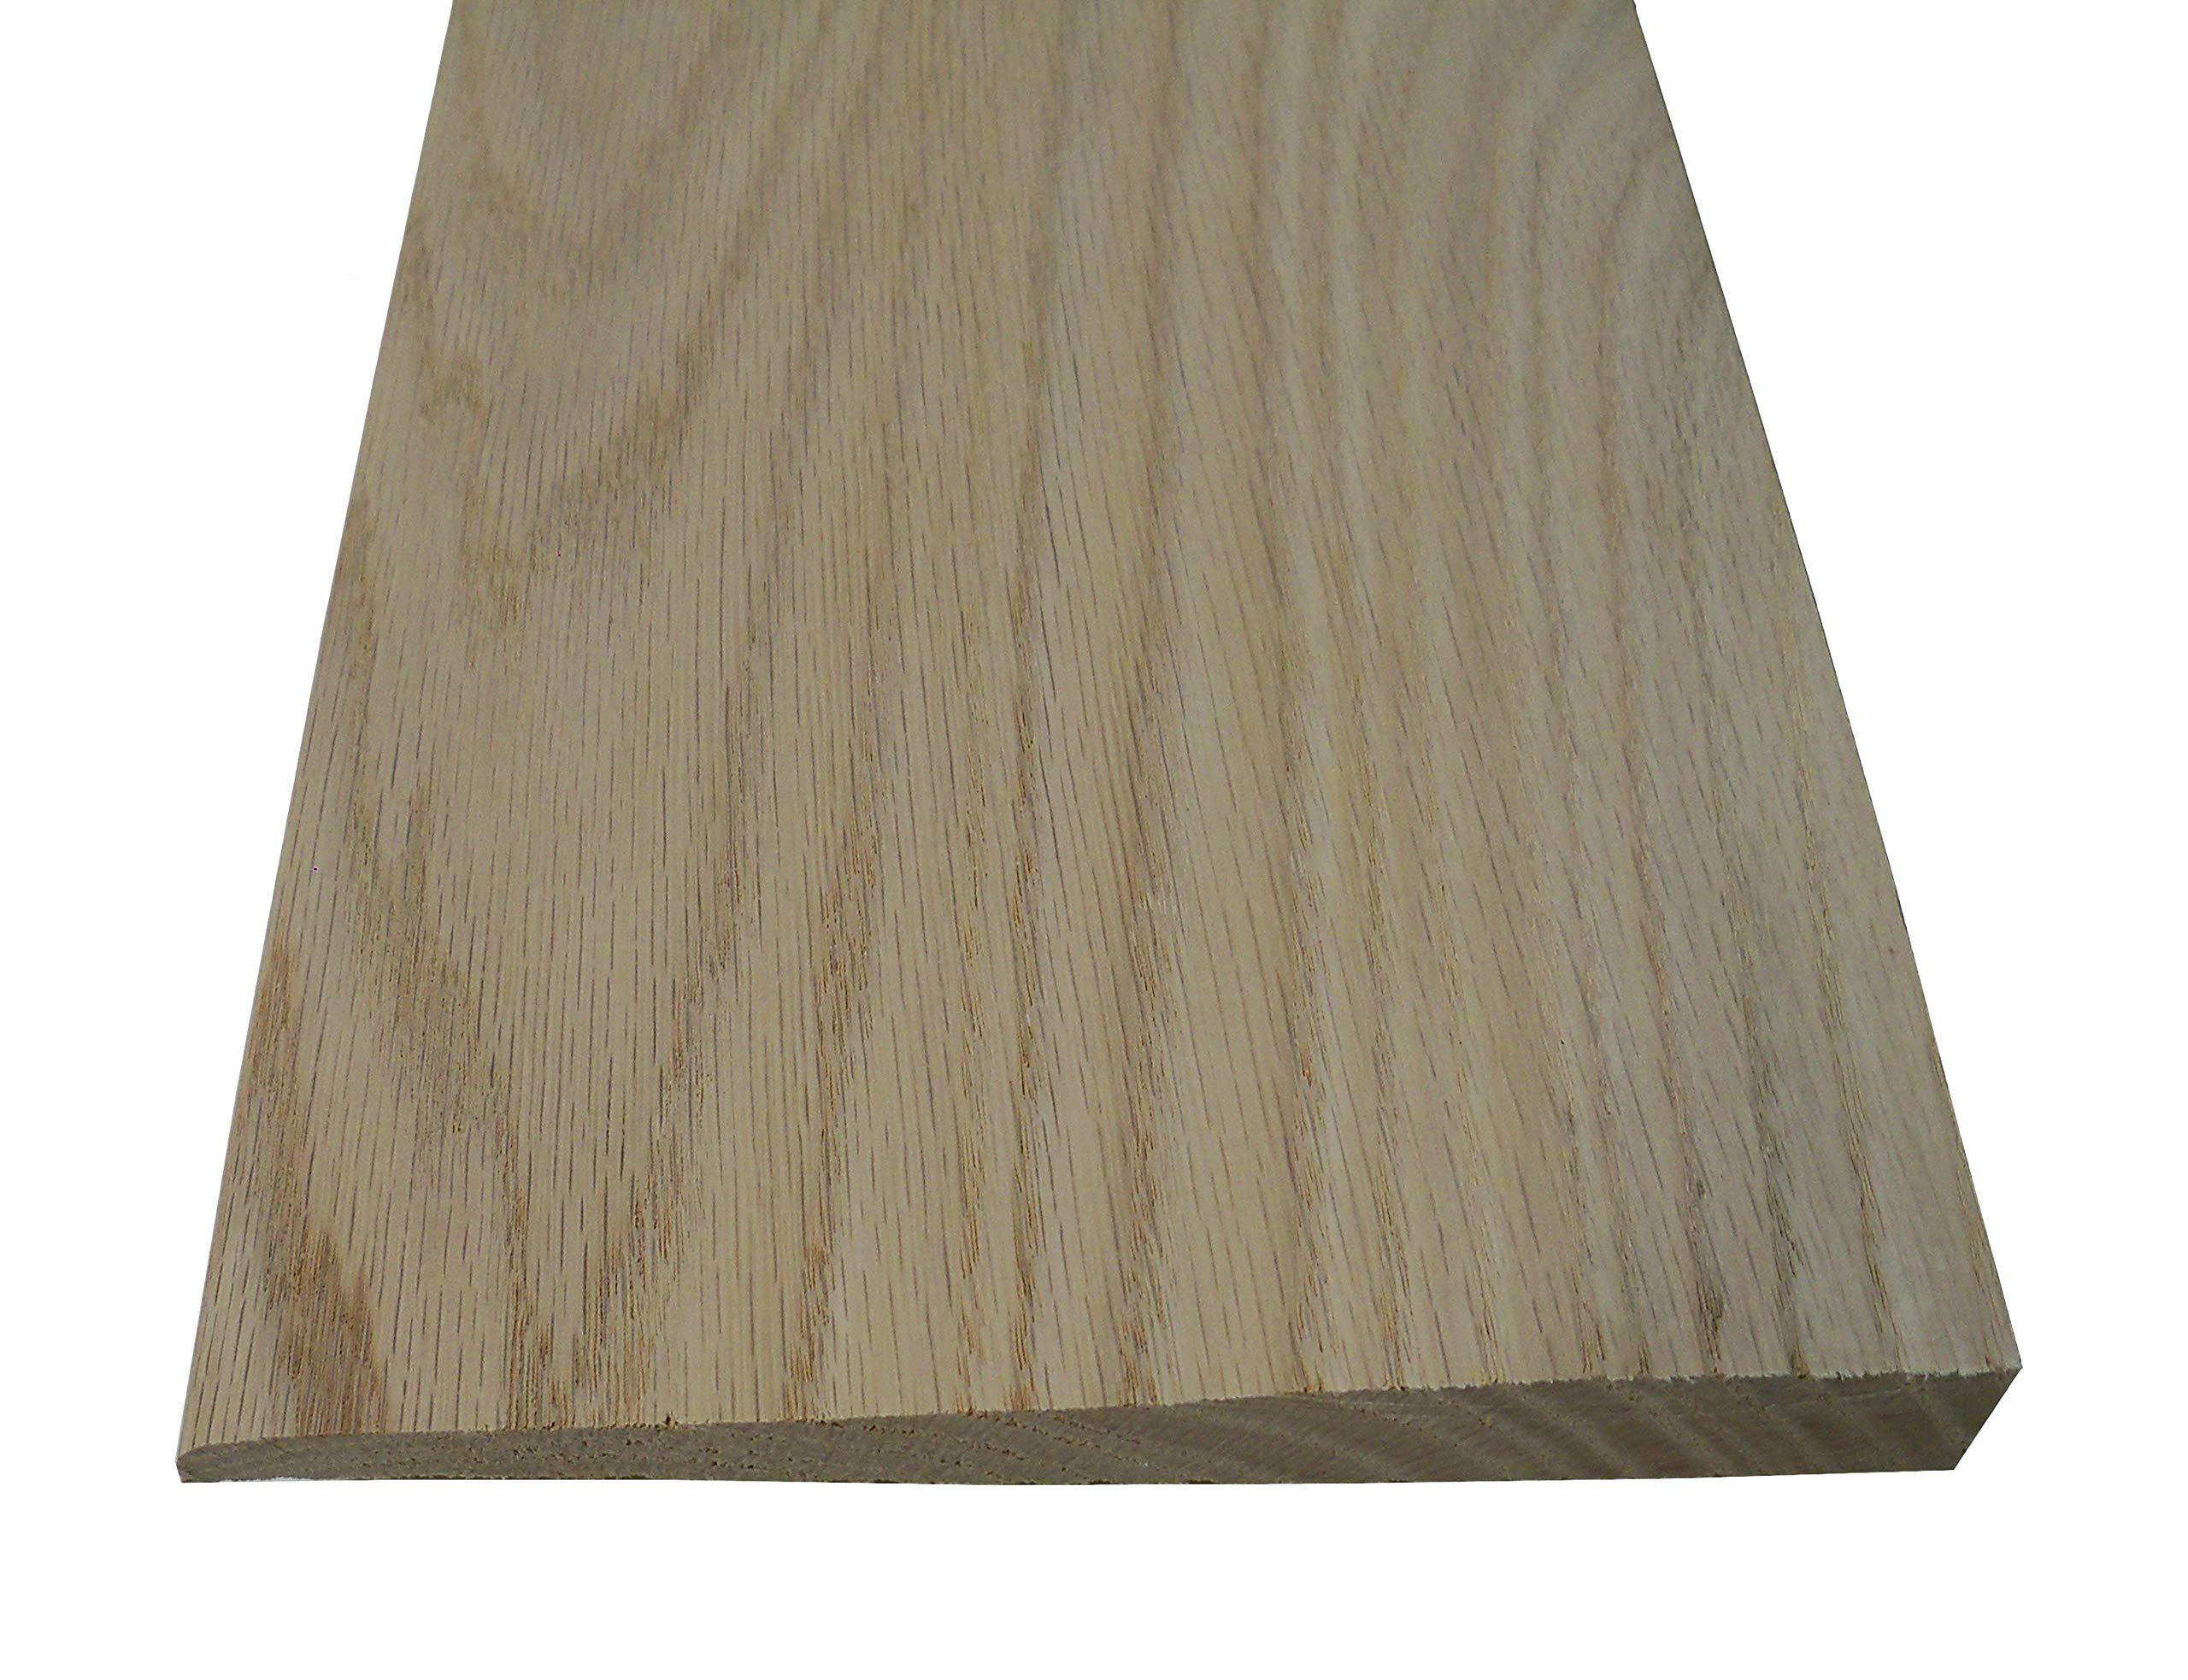 Solid Hardwood Interior Thresholds - Style D - 72 inches Long - Red Oak